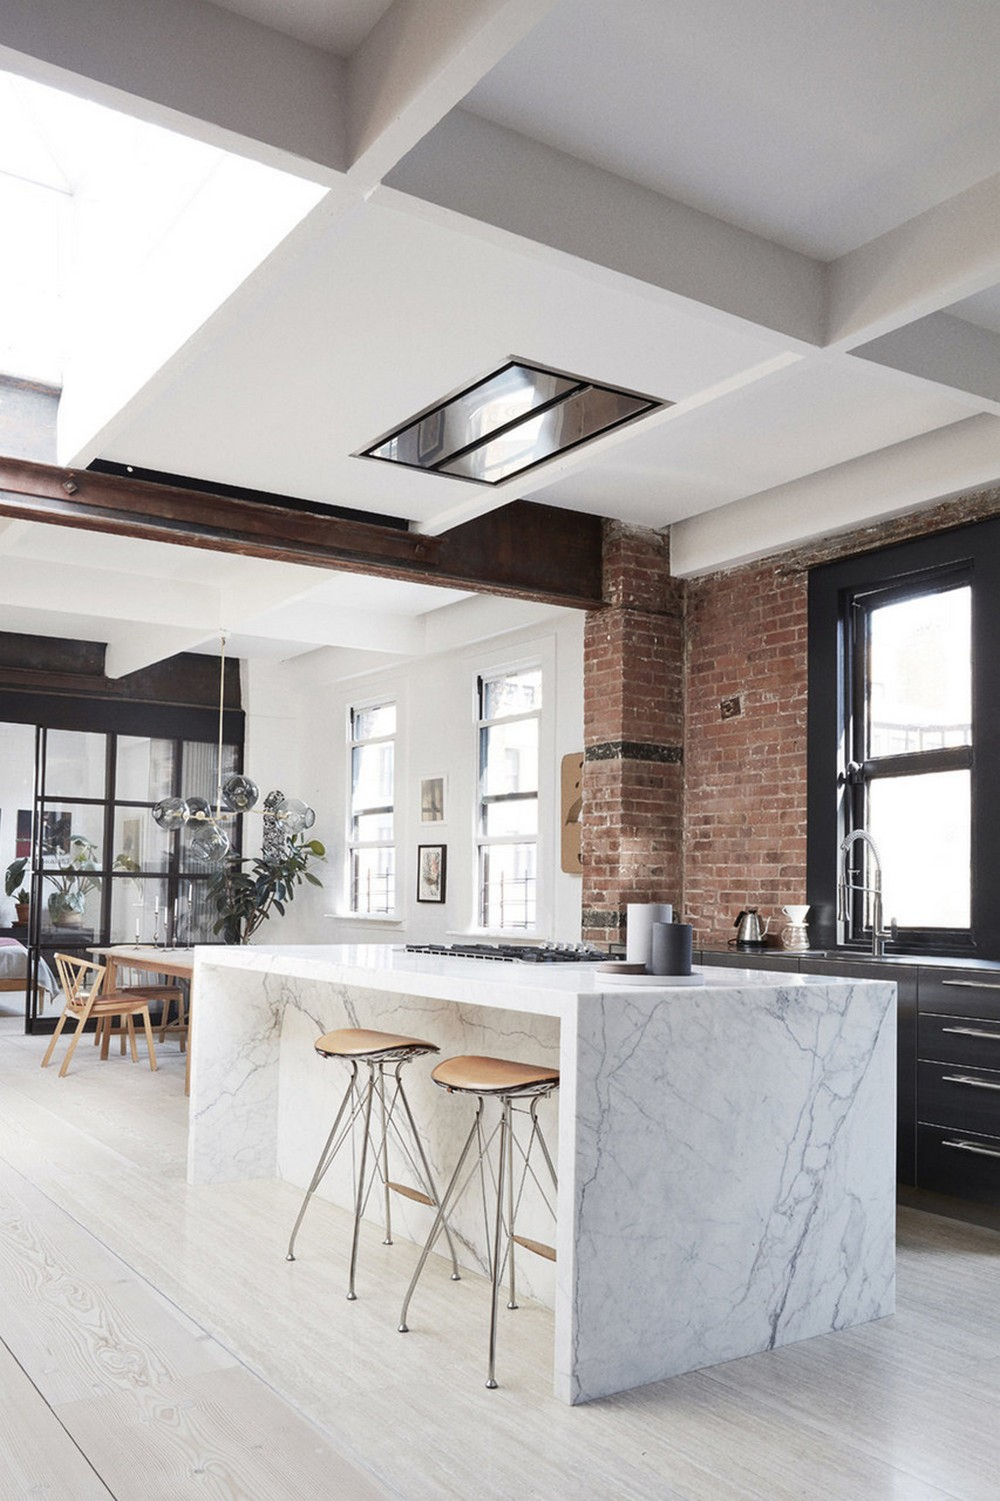 Luxury Real Estate 5 Extremely Cool New York Industrial Lofts (3) Industrial Lofts Luxury Real Estate: 5 Extremely Cool New York Industrial Lofts Luxury Real Estate 5 Extremely Cool New York Industrial Lofts 3